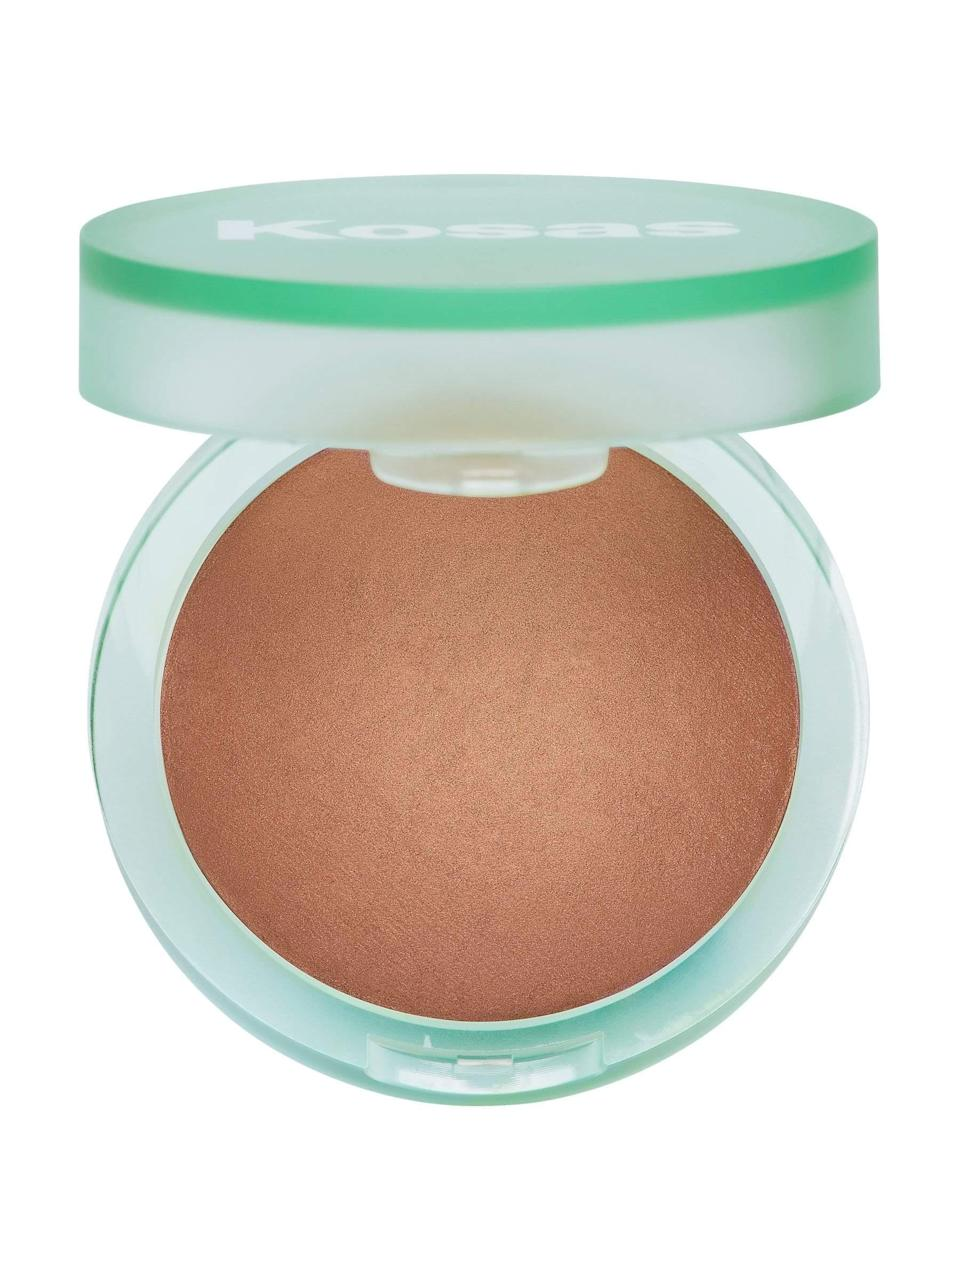 """<h3>Kosas The Sun Show Bronzer</h3> <br>""""Hey, it's still summer, even if I'm spending most of my days indoors. I own quite a few bronzers, but Kosas's baked formula has been on repeat lately — and it's a safe alternative to soaking up UV rays, might I add. The medium shade has the most gorgeous terra-cotta undertones that complement my olive skin, so I usually wear it in place of blush on the apples of my cheeks and lightly dust it across my nose and forehead. It's admittedly a bit pricey at $34, but the pan is deceptively generous and a tiny amount goes a long way — it's <em>that</em> pigmented."""" — Karina Hoshikawa, beauty & wellness market writer<br><br><strong>Kosas</strong> The Sun Show Bronzer - Medium, $, available at <a href=""""https://go.skimresources.com/?id=30283X879131&url=https%3A%2F%2Fkosas.com%2Fproducts%2Fthe-sun-show-bronzer-medium"""" rel=""""nofollow noopener"""" target=""""_blank"""" data-ylk=""""slk:Kosas"""" class=""""link rapid-noclick-resp"""">Kosas</a><br>"""